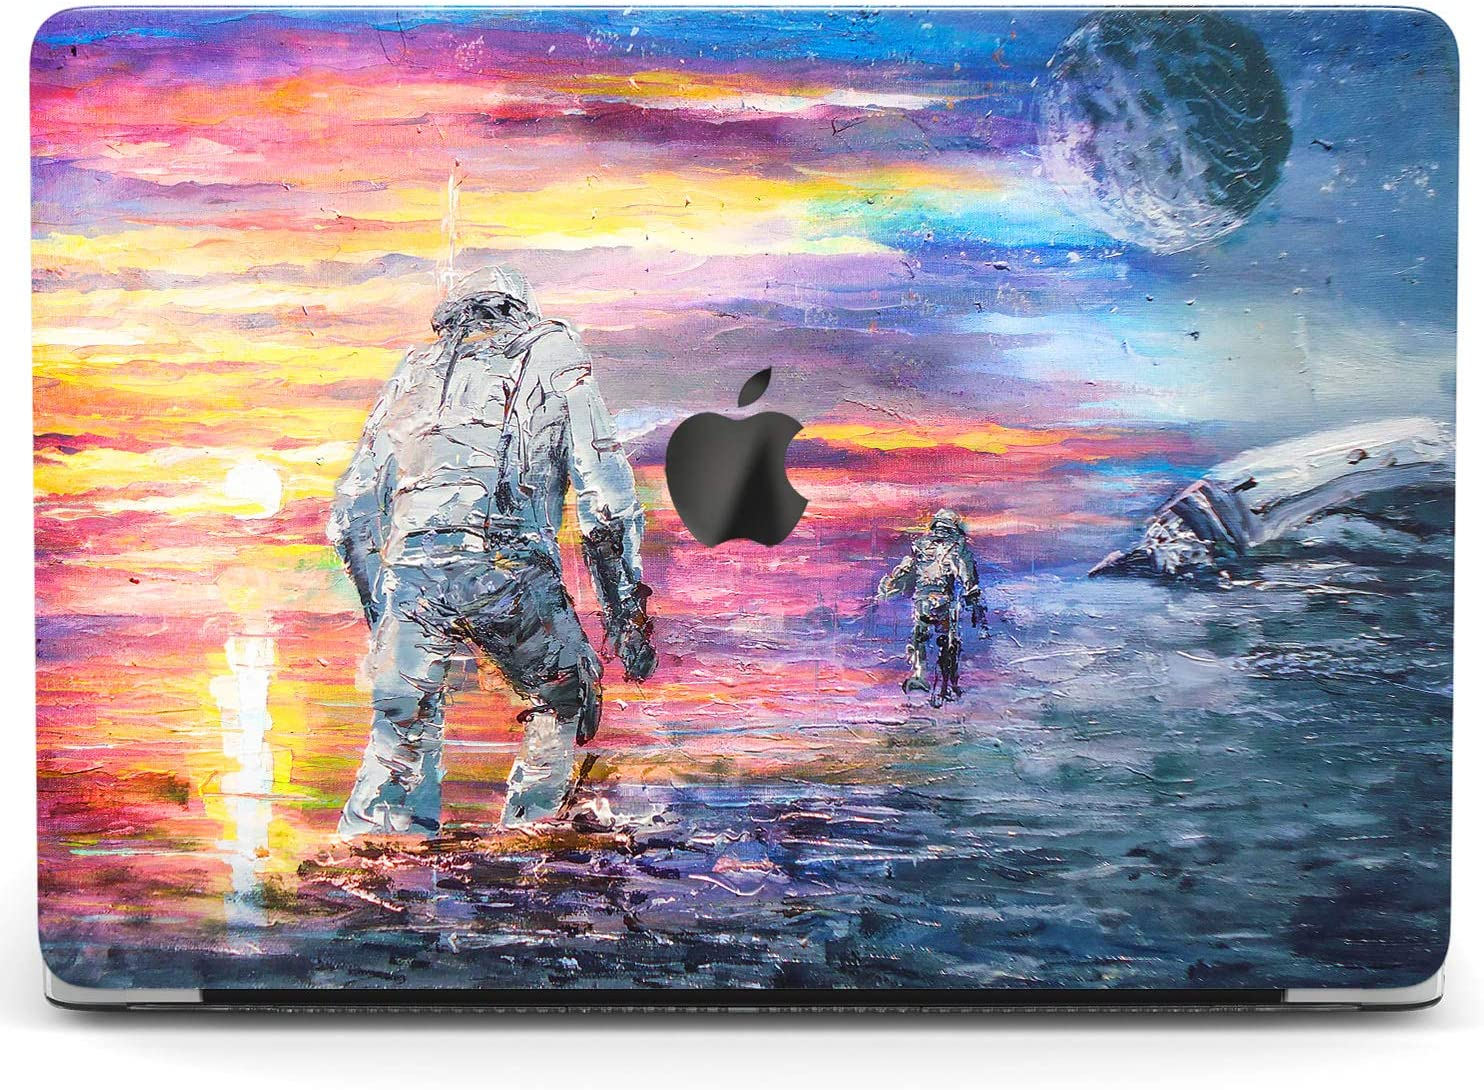 Wonder Wild Case for MacBook Air 13 inch Pro 15 2019 2018 Retina 12 11 Apple Hard Mac Protective Cover Touch Bar 2017 2016 2020 Plastic Laptop Print Watercolor Astronaut Landscape Bright Galaxy Art